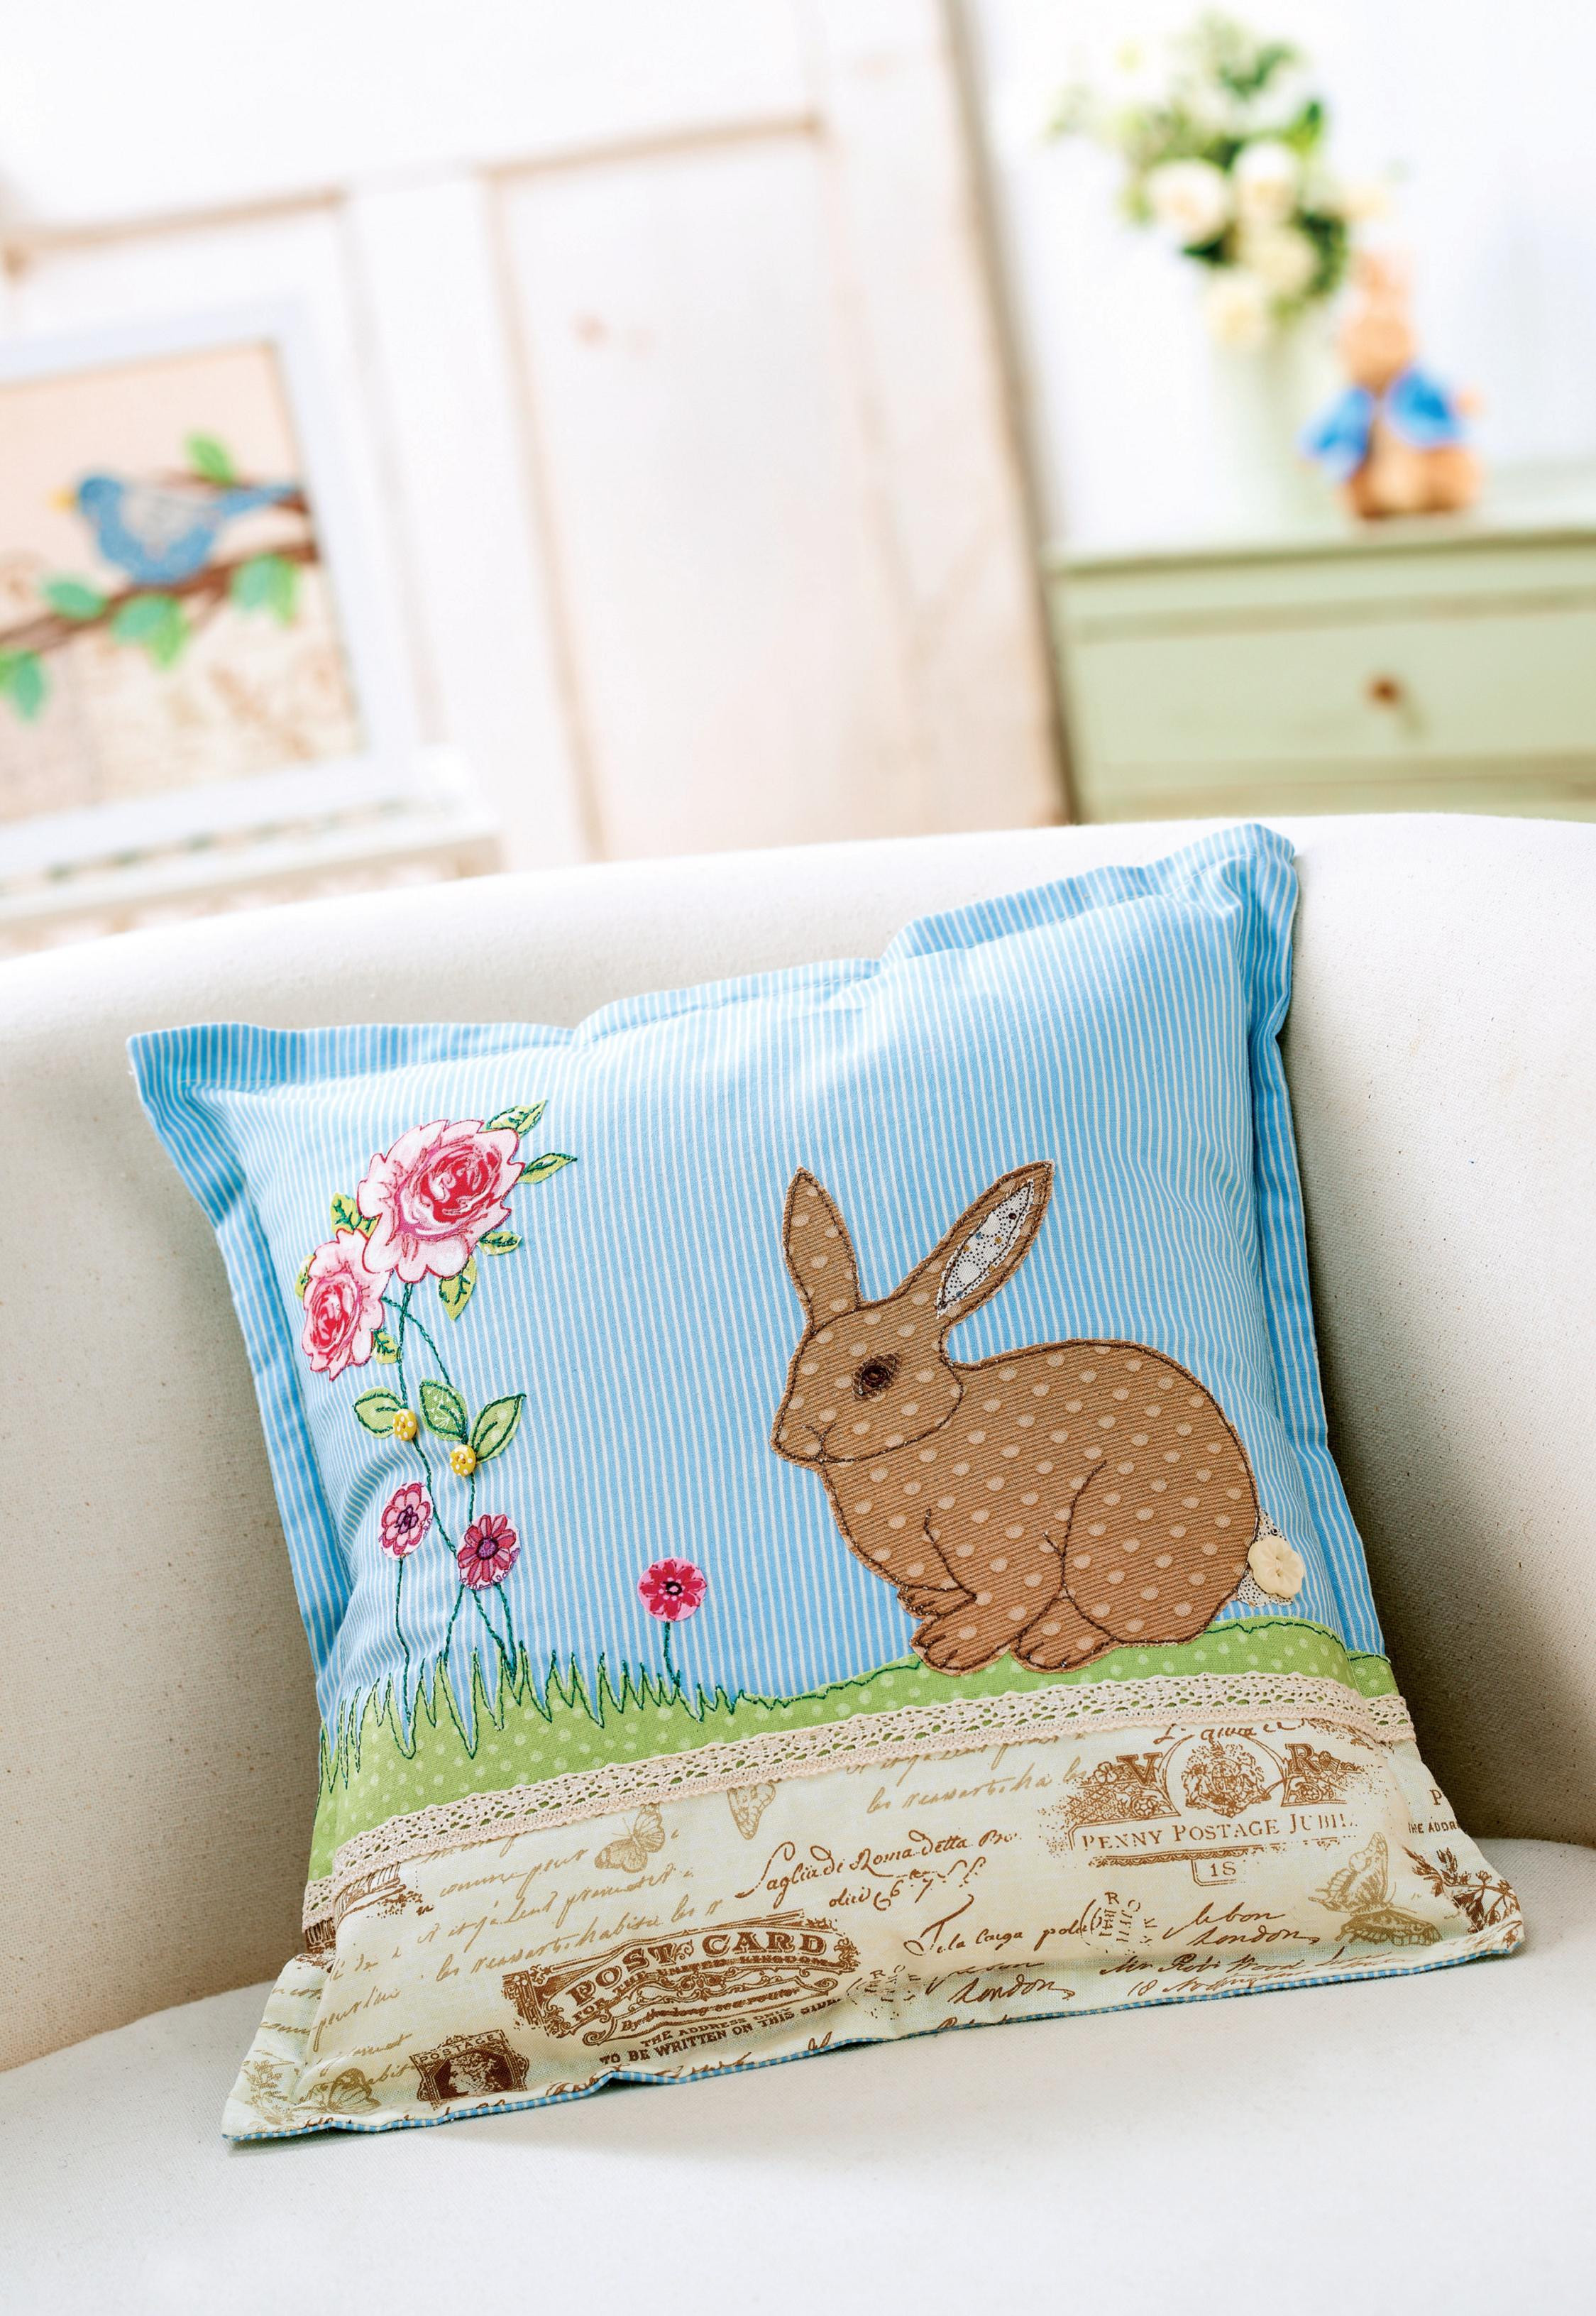 Cushion Patterns Elegant Easter Applique Cushion and Picture Free Sewing Patterns Of Lovely 43 Images Cushion Patterns